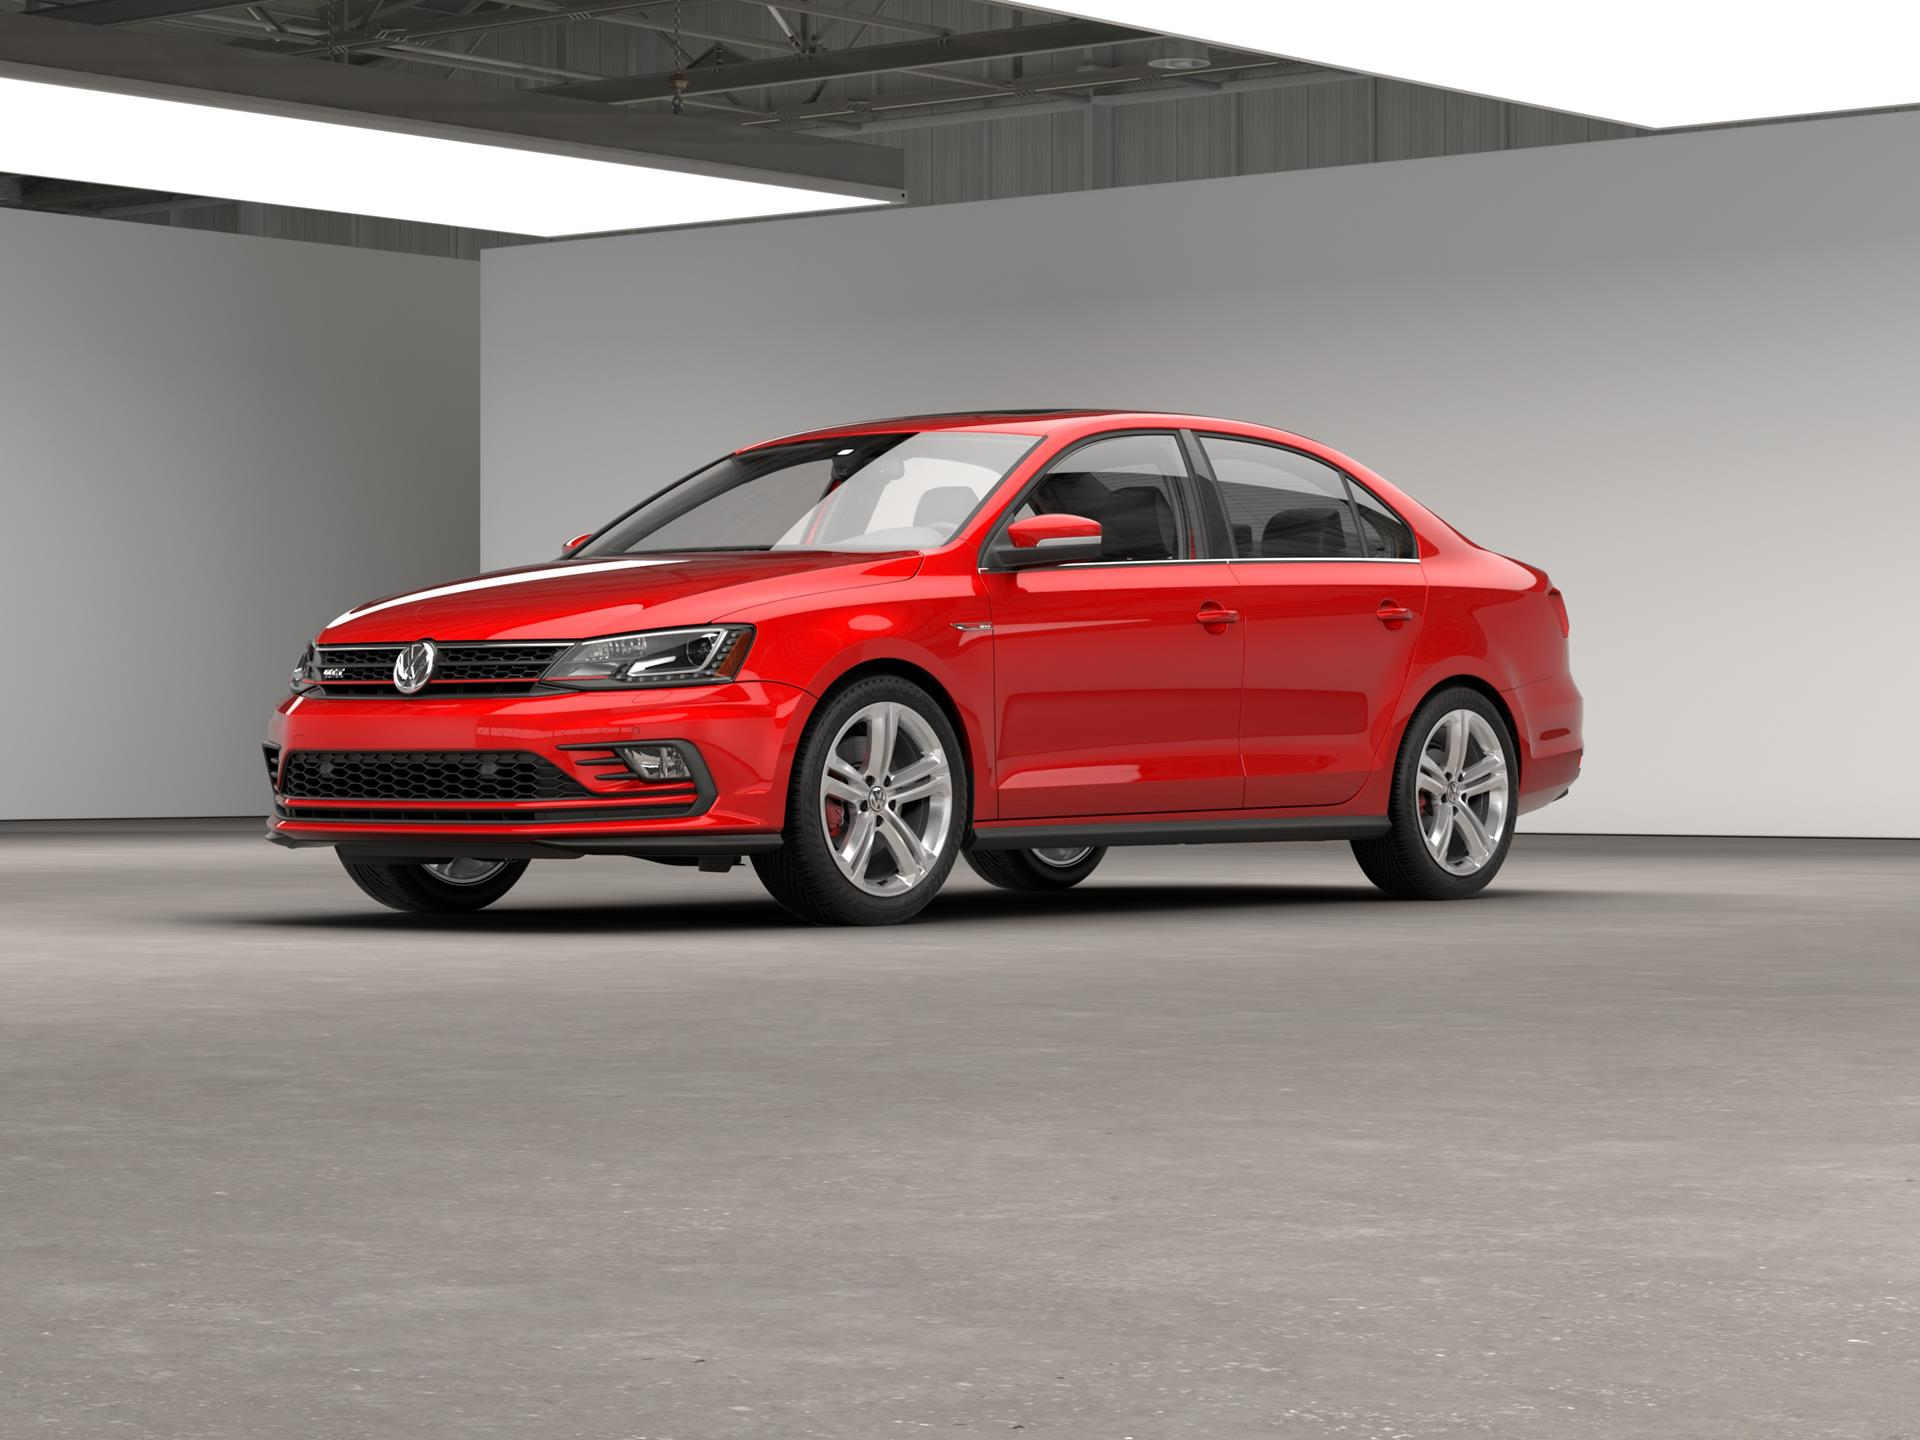 2016 Volkswagen Jetta GLI News and Information